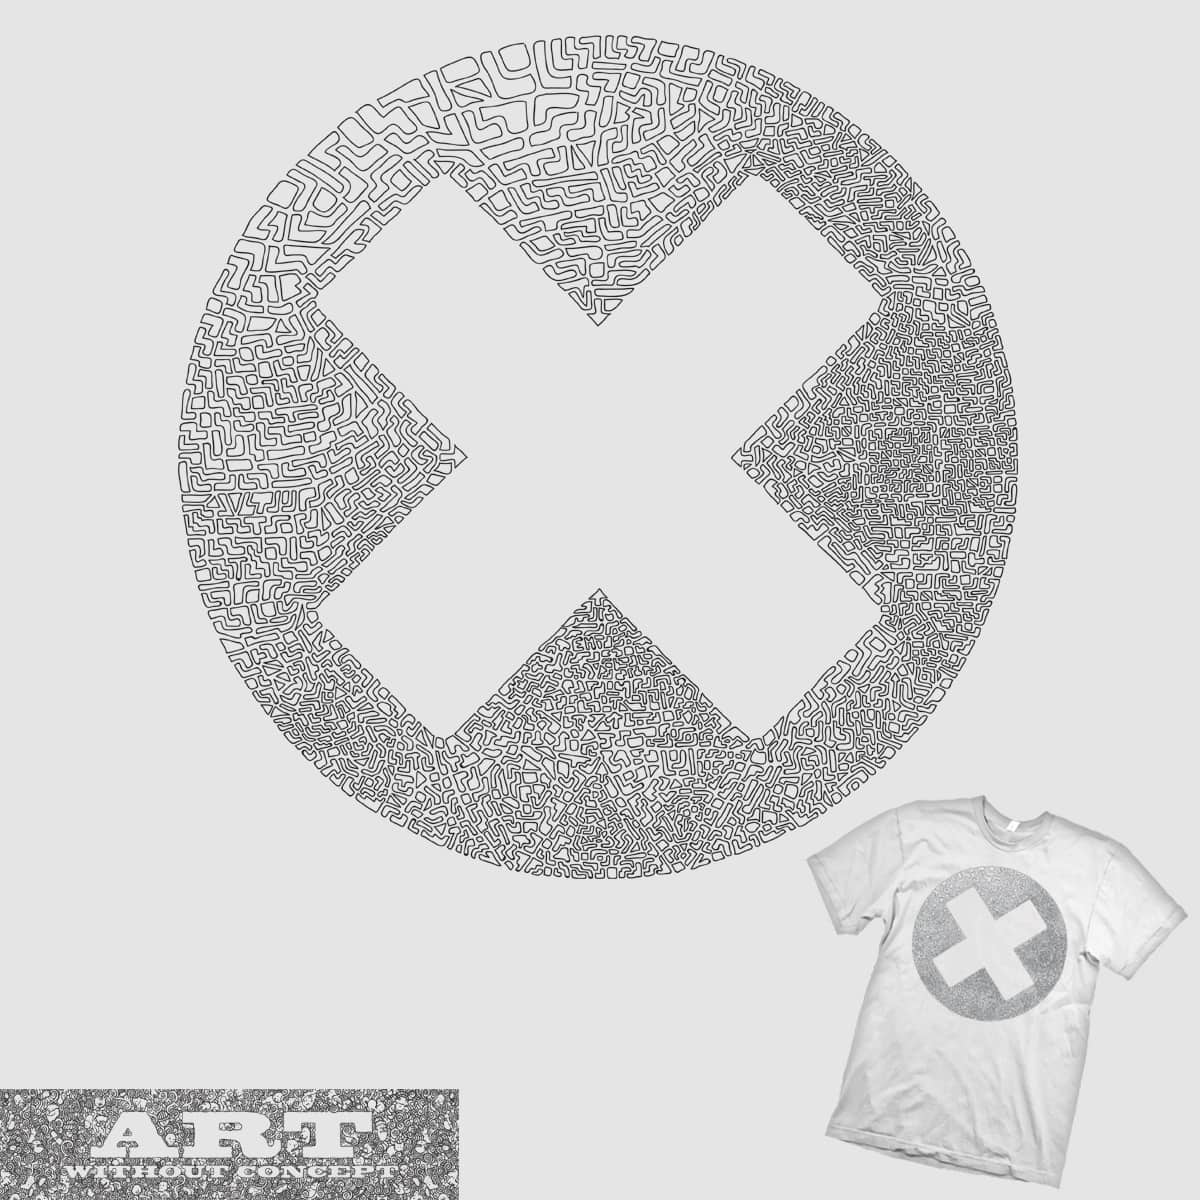 X by parallelish on Threadless